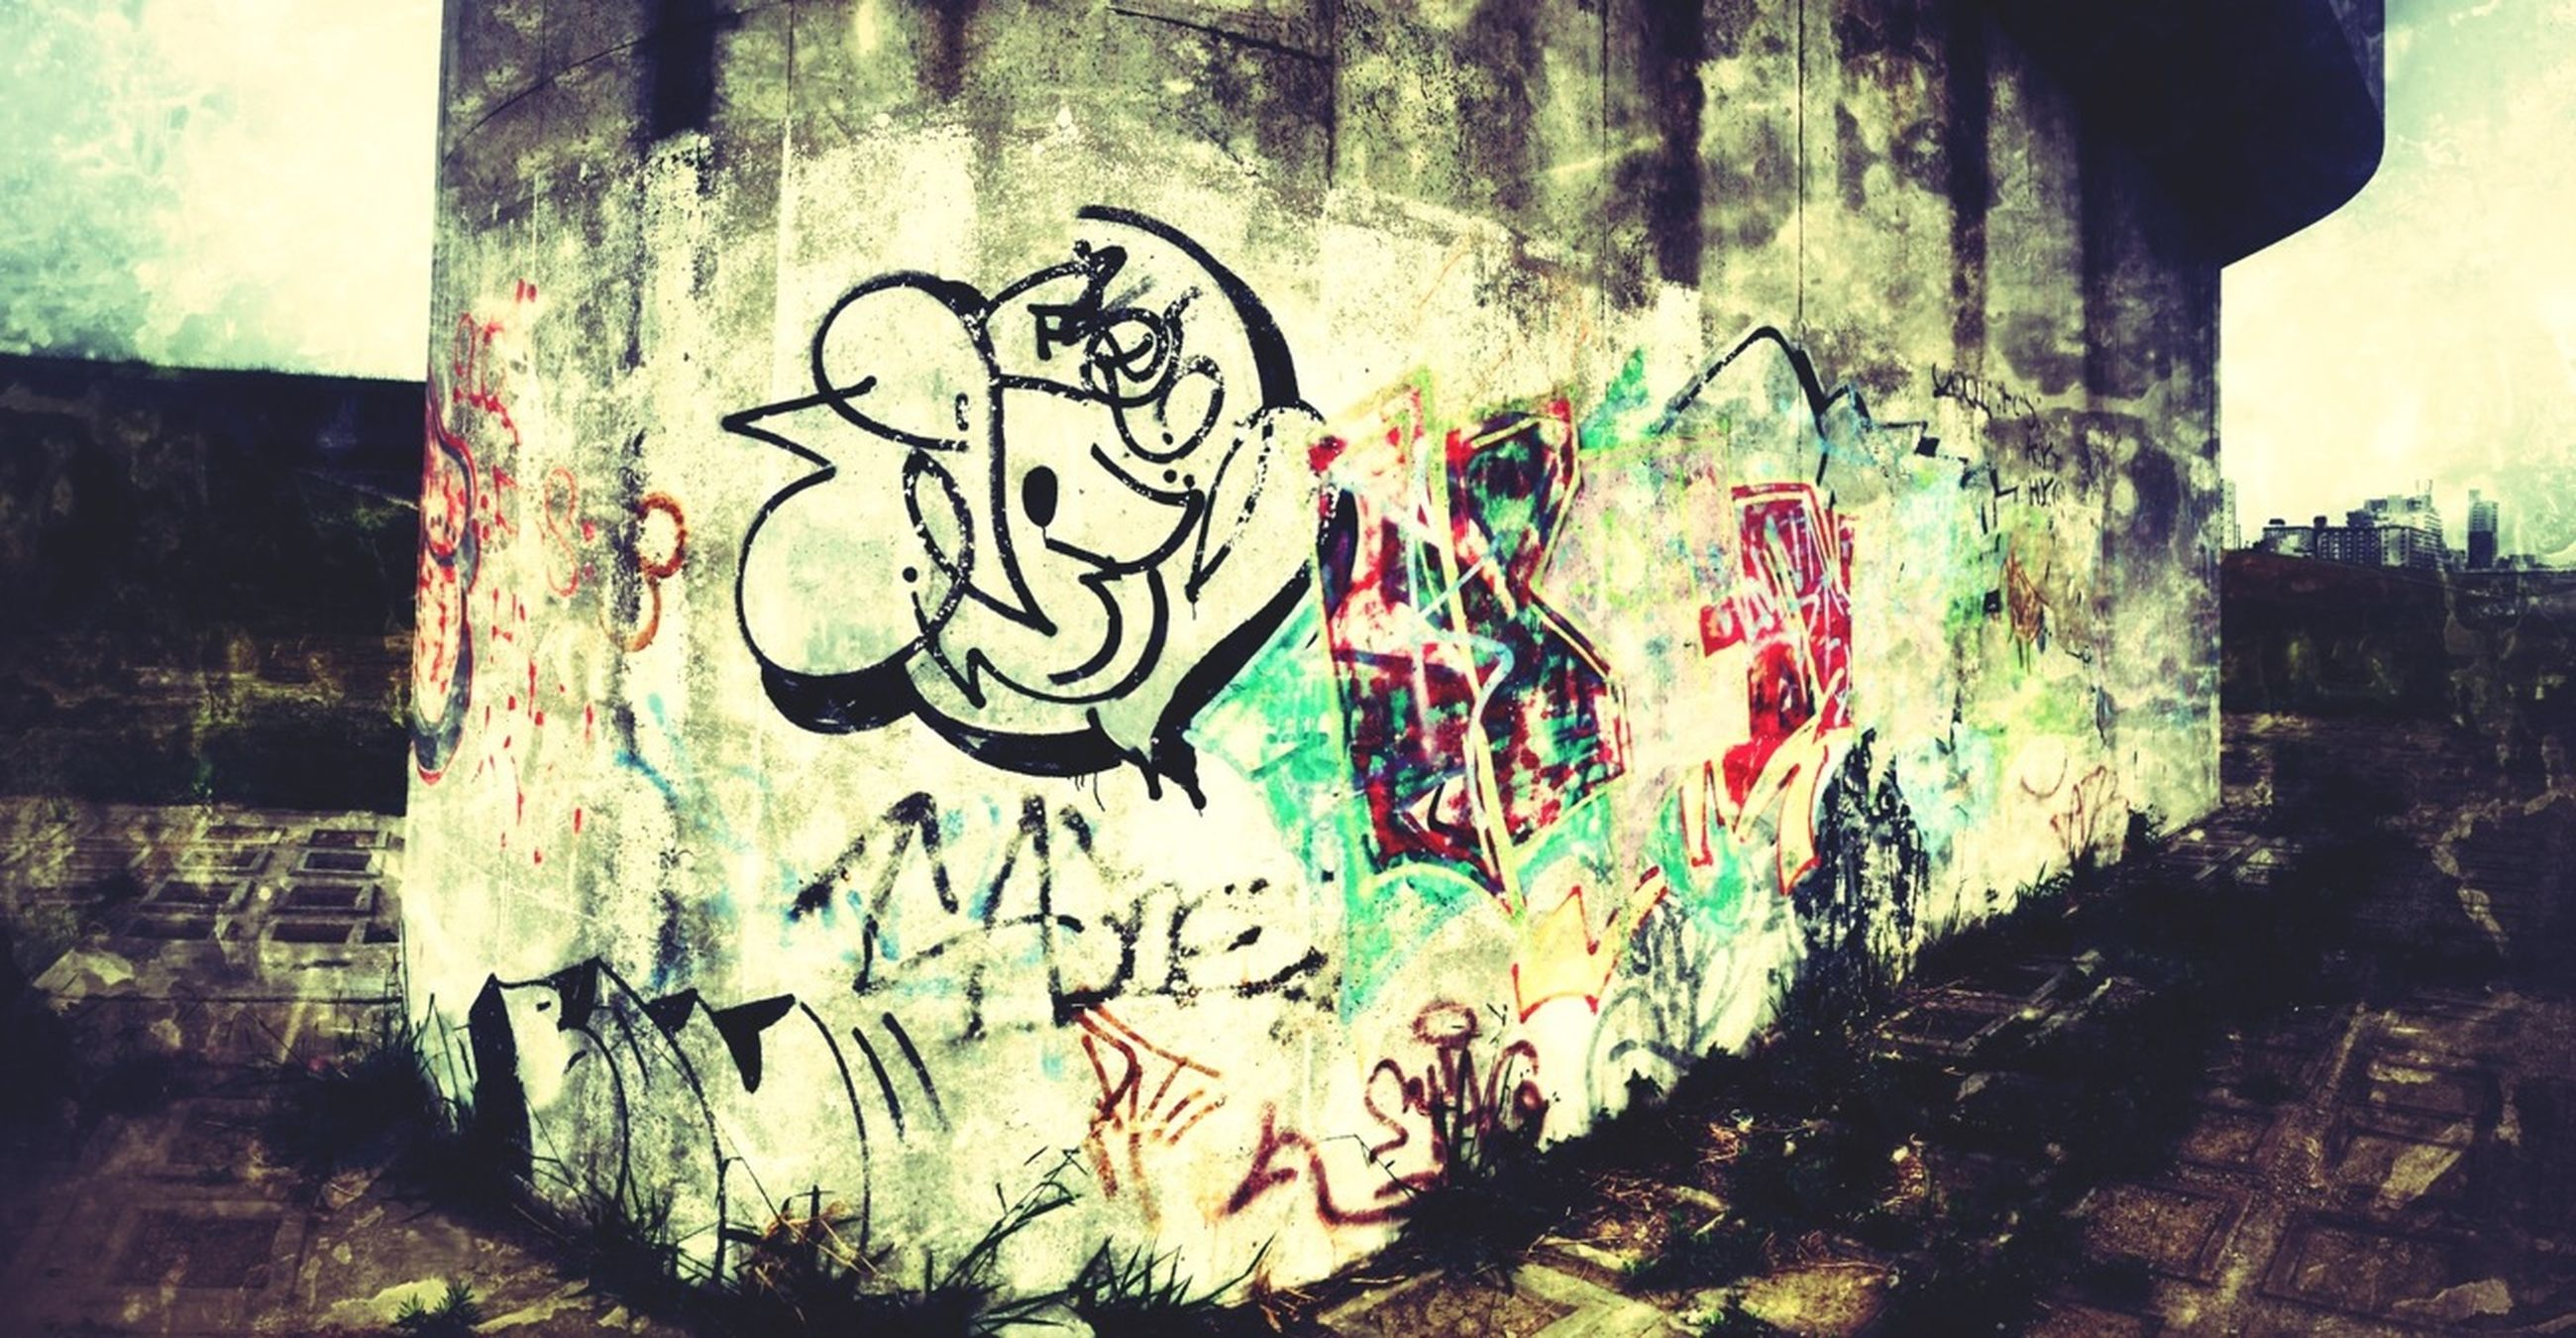 graffiti, art, creativity, art and craft, architecture, built structure, wall - building feature, building exterior, street art, multi colored, wall, text, human representation, mural, vandalism, design, painting, weathered, old, western script